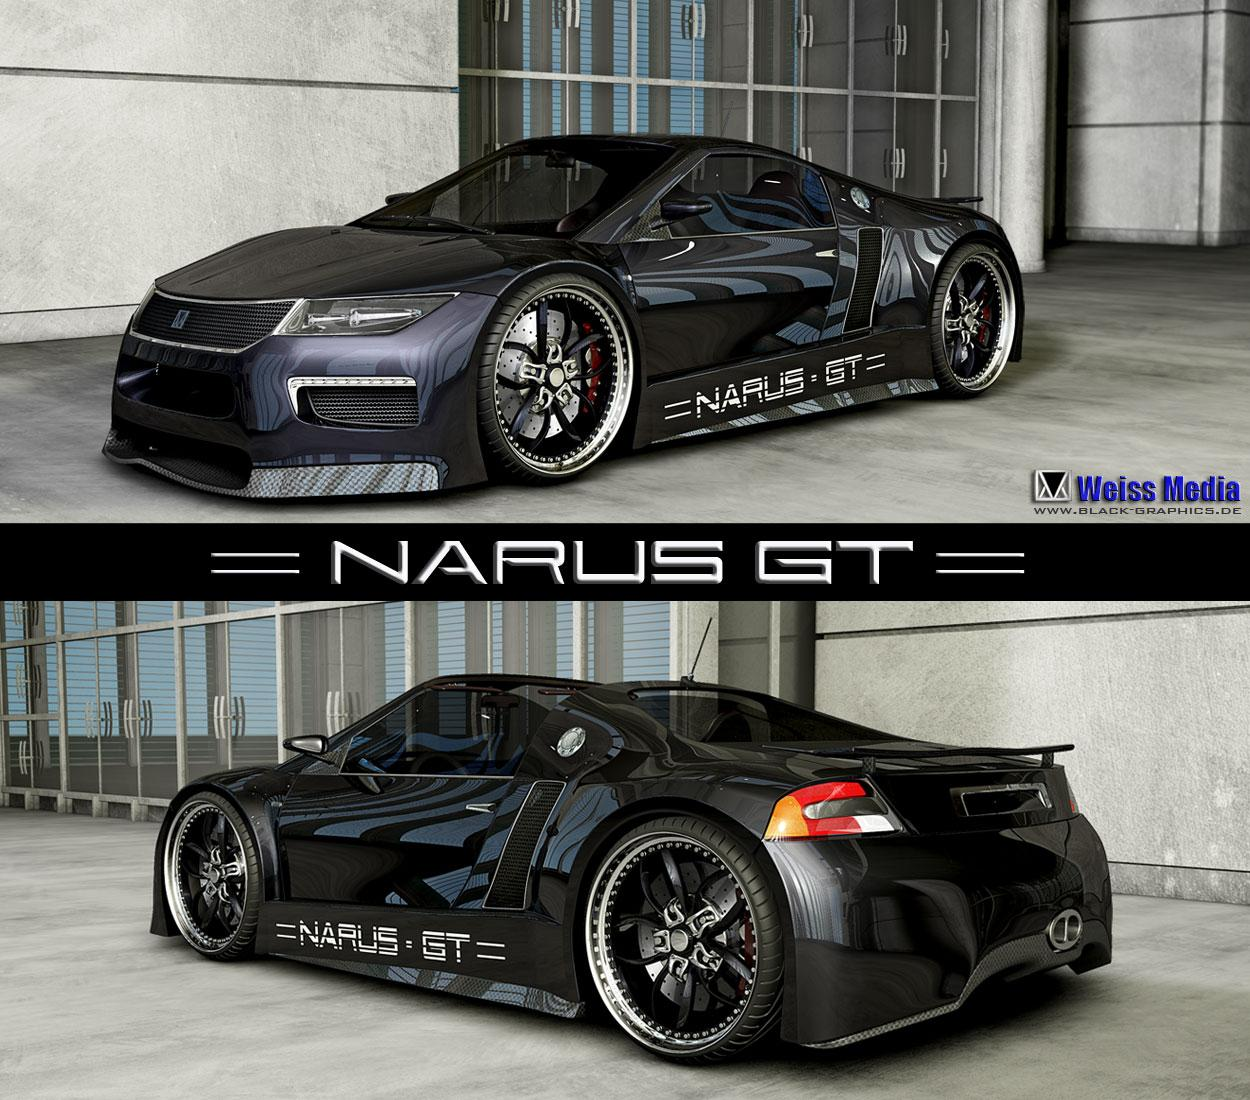 BG Narus GT Concept by m3d